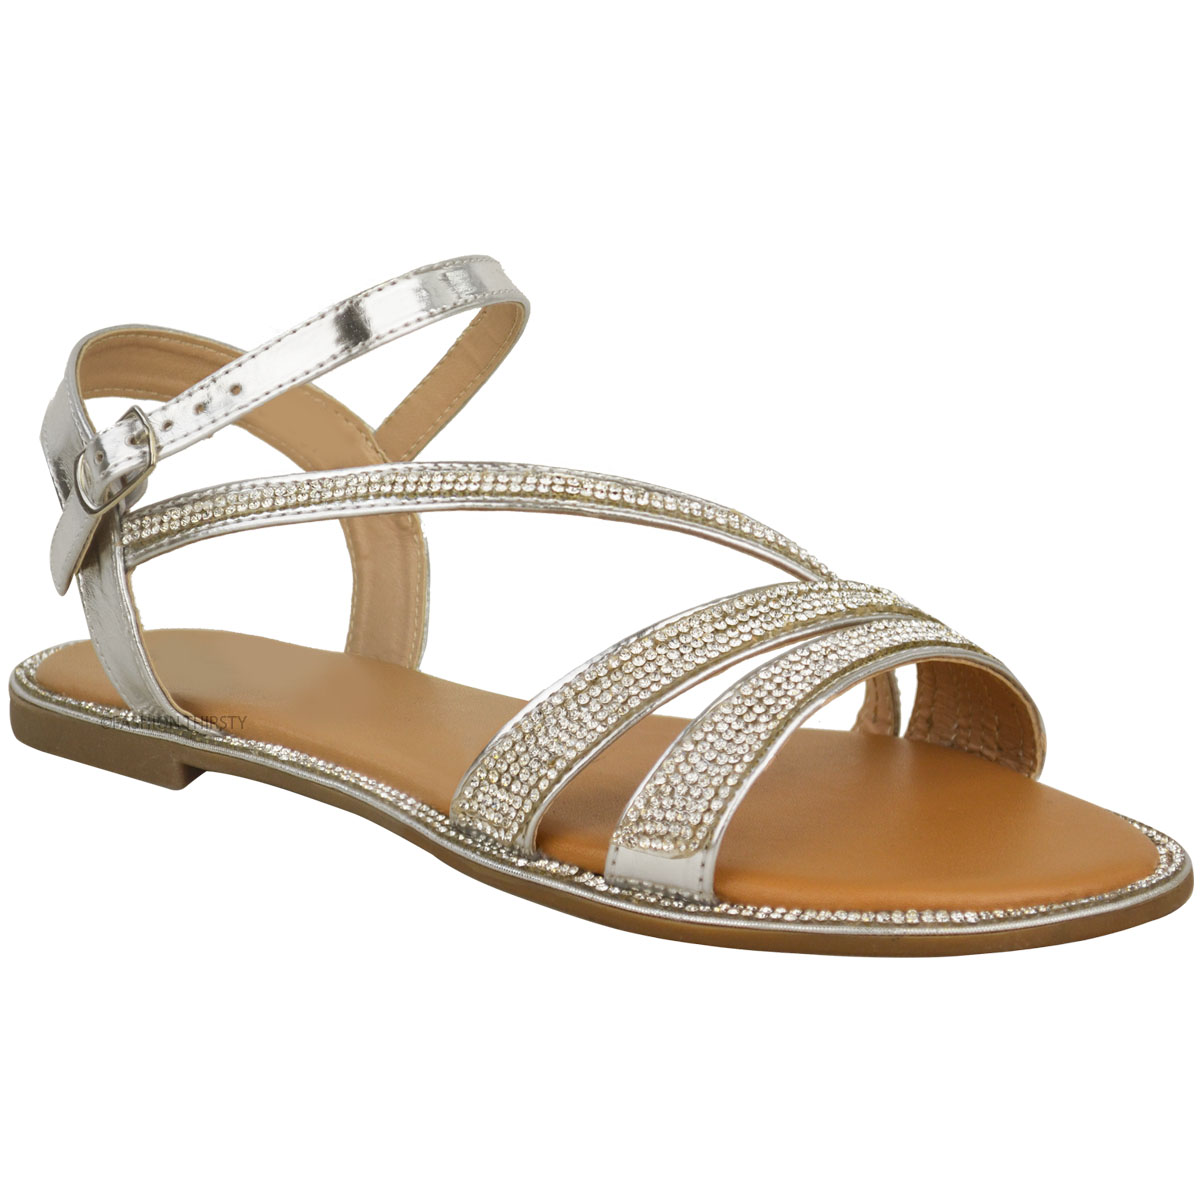 Shop discounted womens summer shoes & more on lindsayclewisirah.gq Save money on millions of top products at low prices, worldwide for over 10 years.